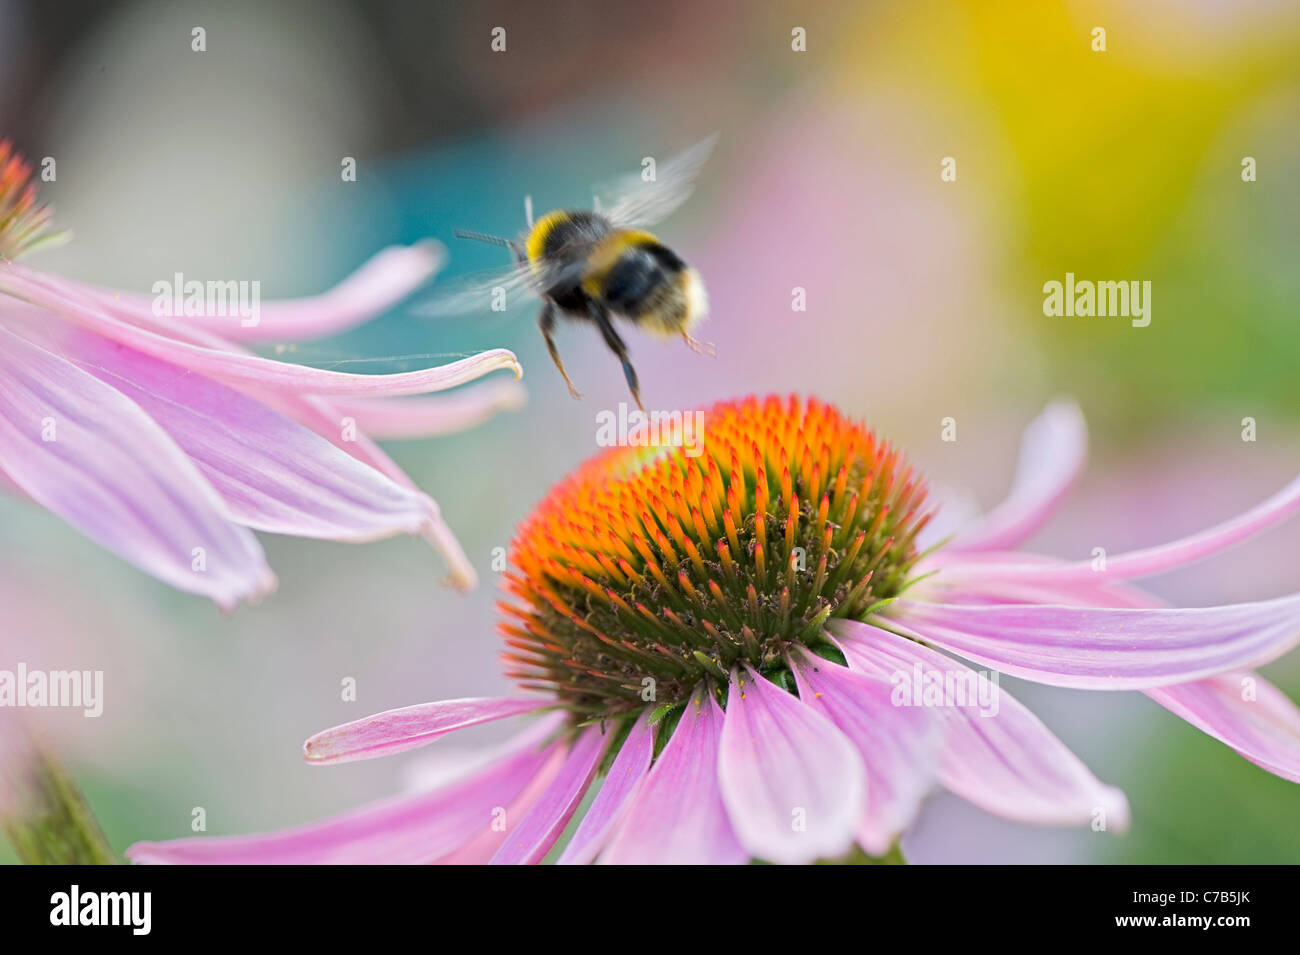 Echinacea purpurea Eastern purple cone flowers or Purple coneflower with a bumble bee collecting pollen - Stock Image